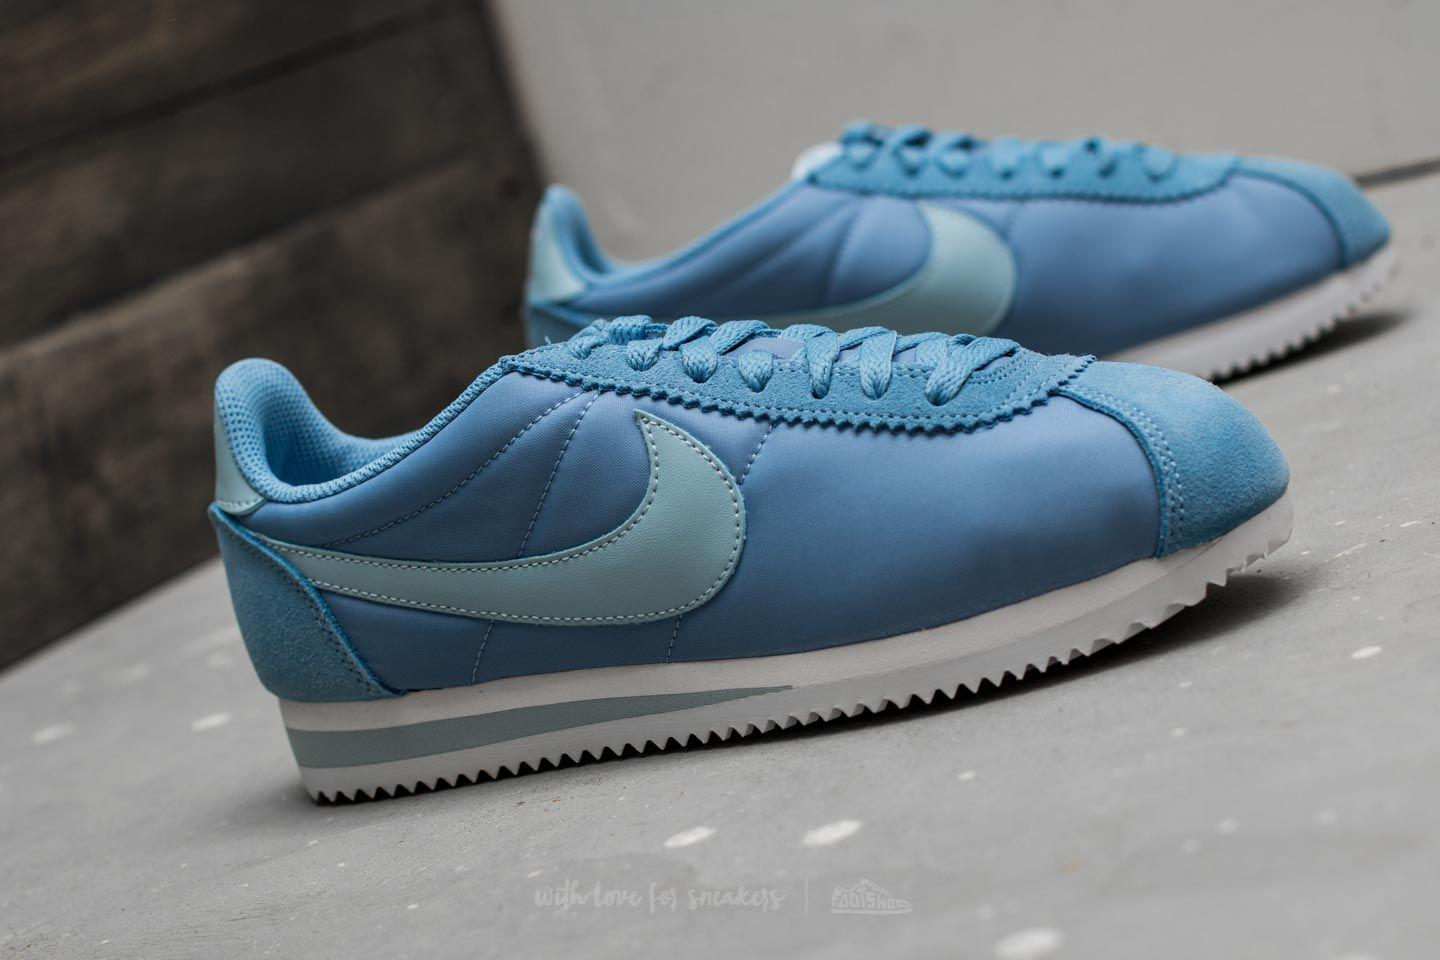 official new design on feet at Wmns Classic Cortez Nylon December Sky/ Light Armory Blue